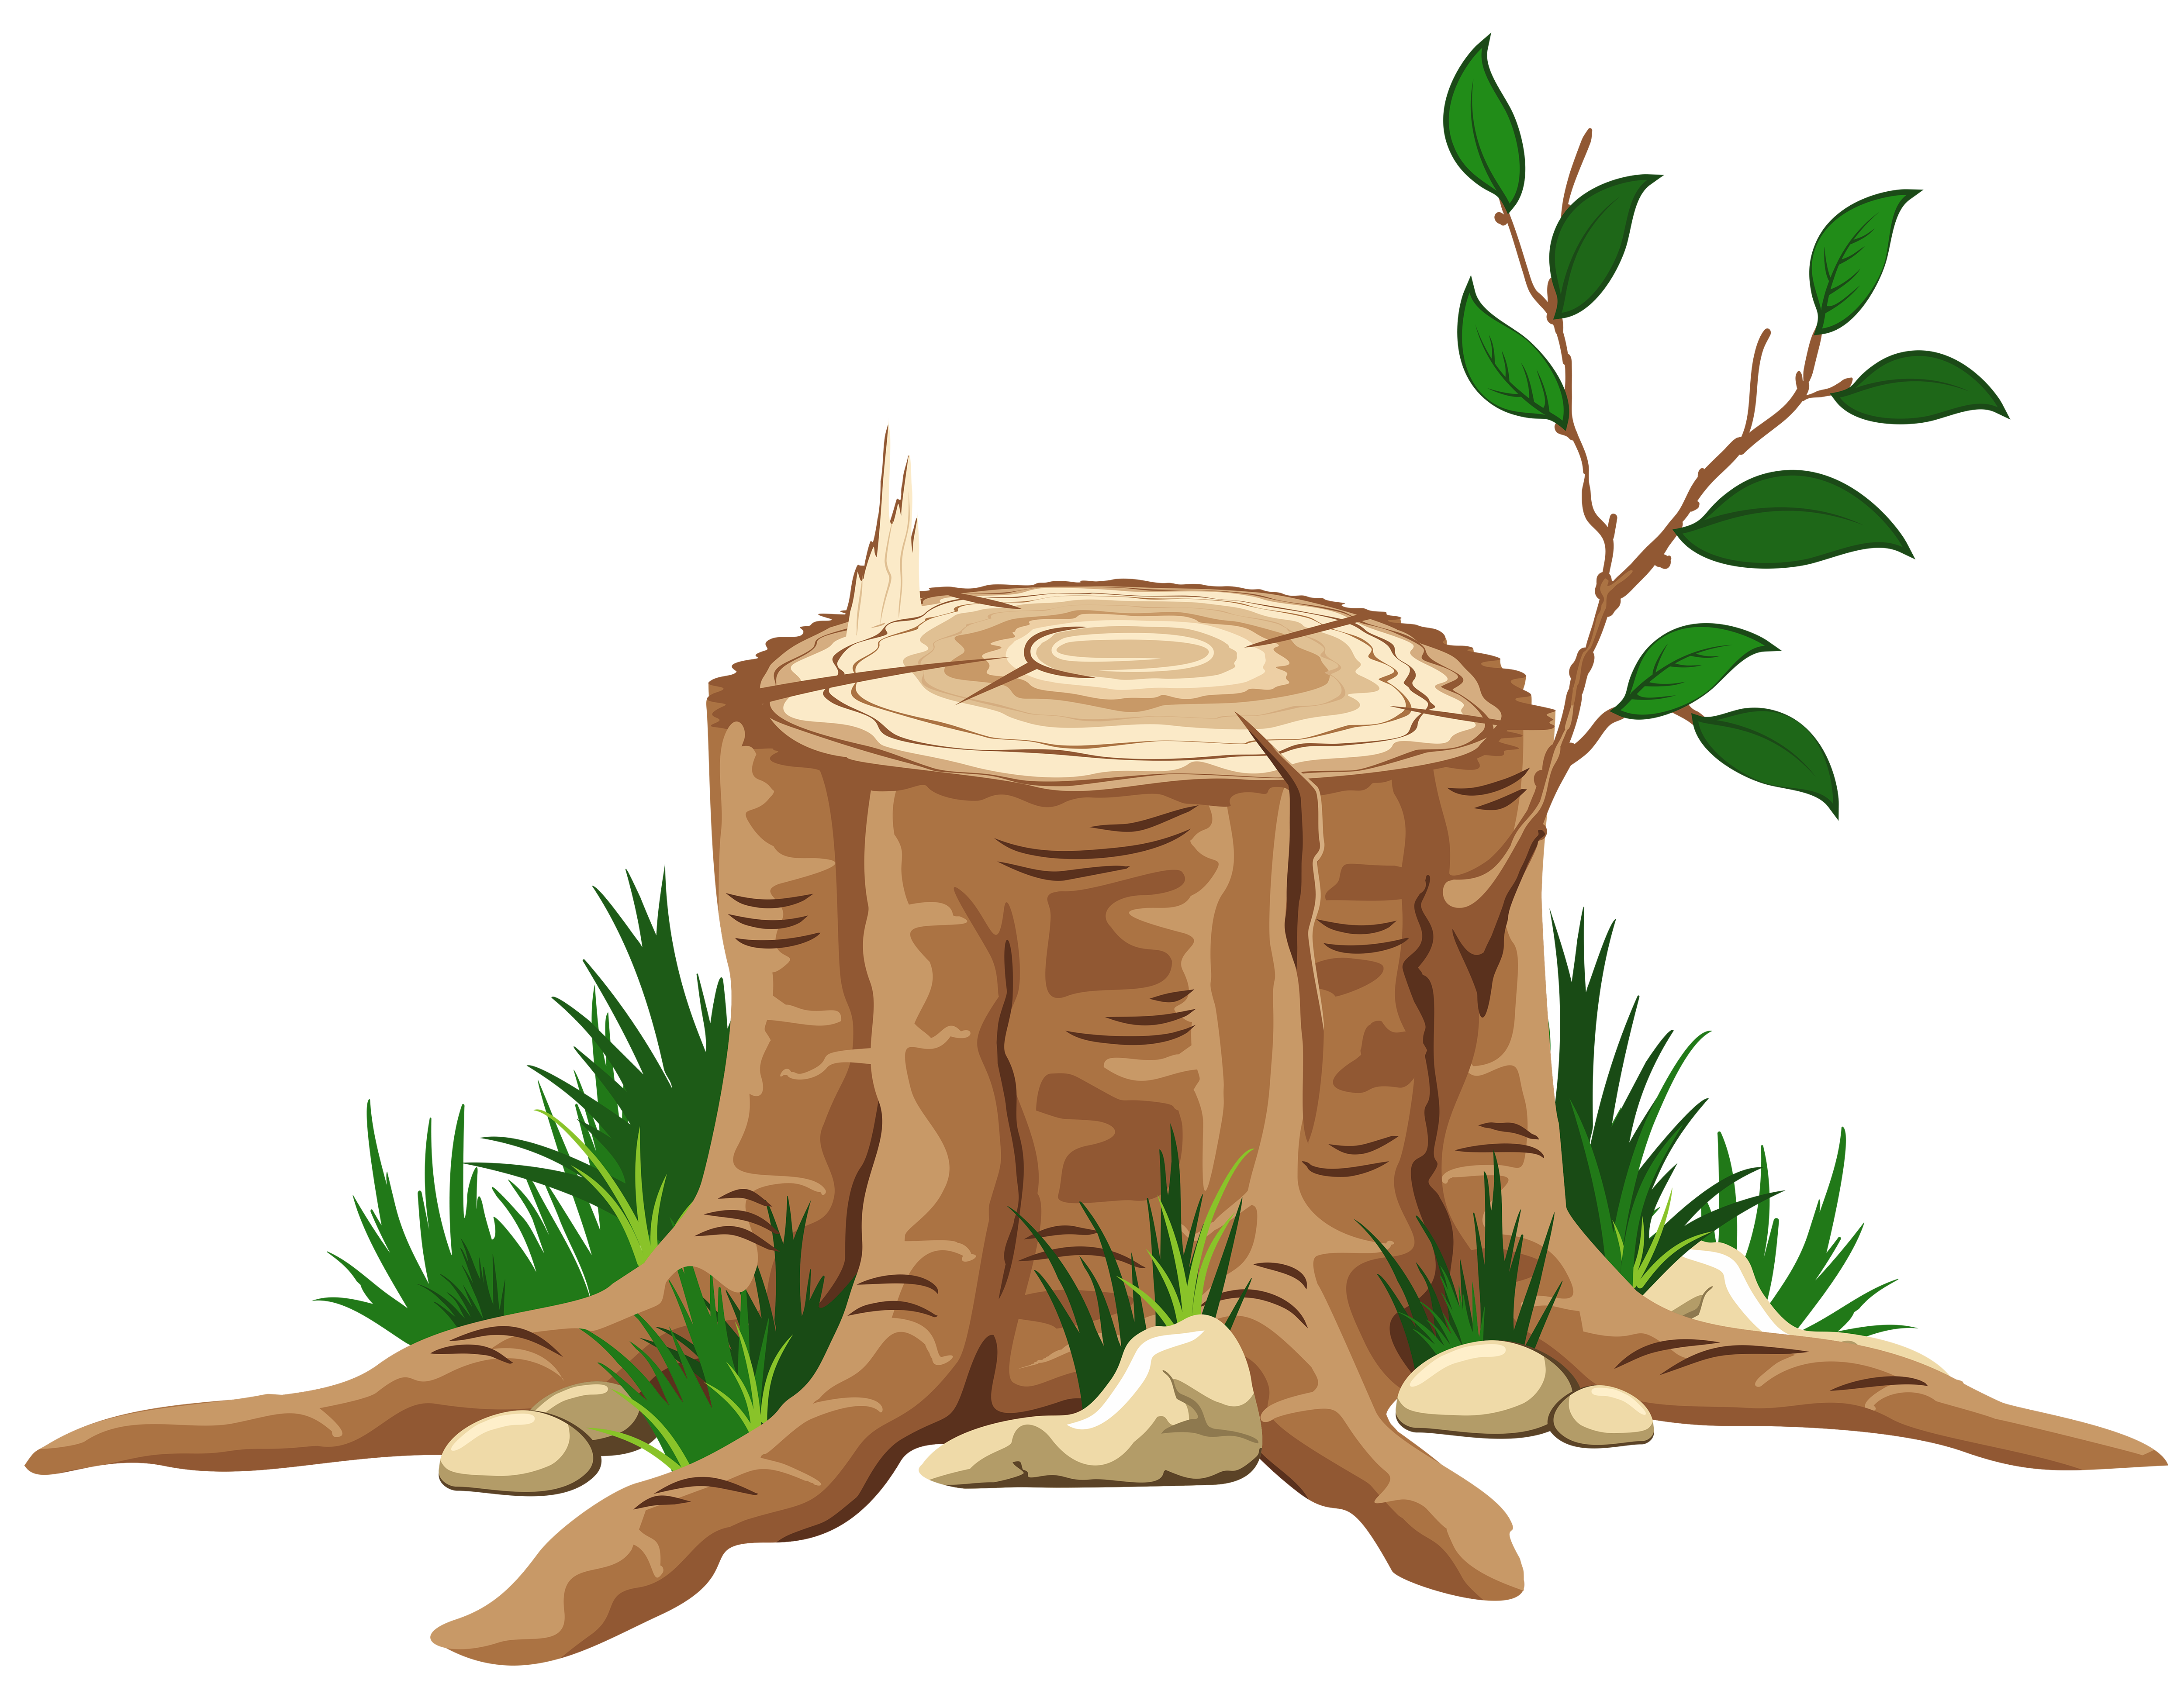 collection of high. Log clipart transparent background